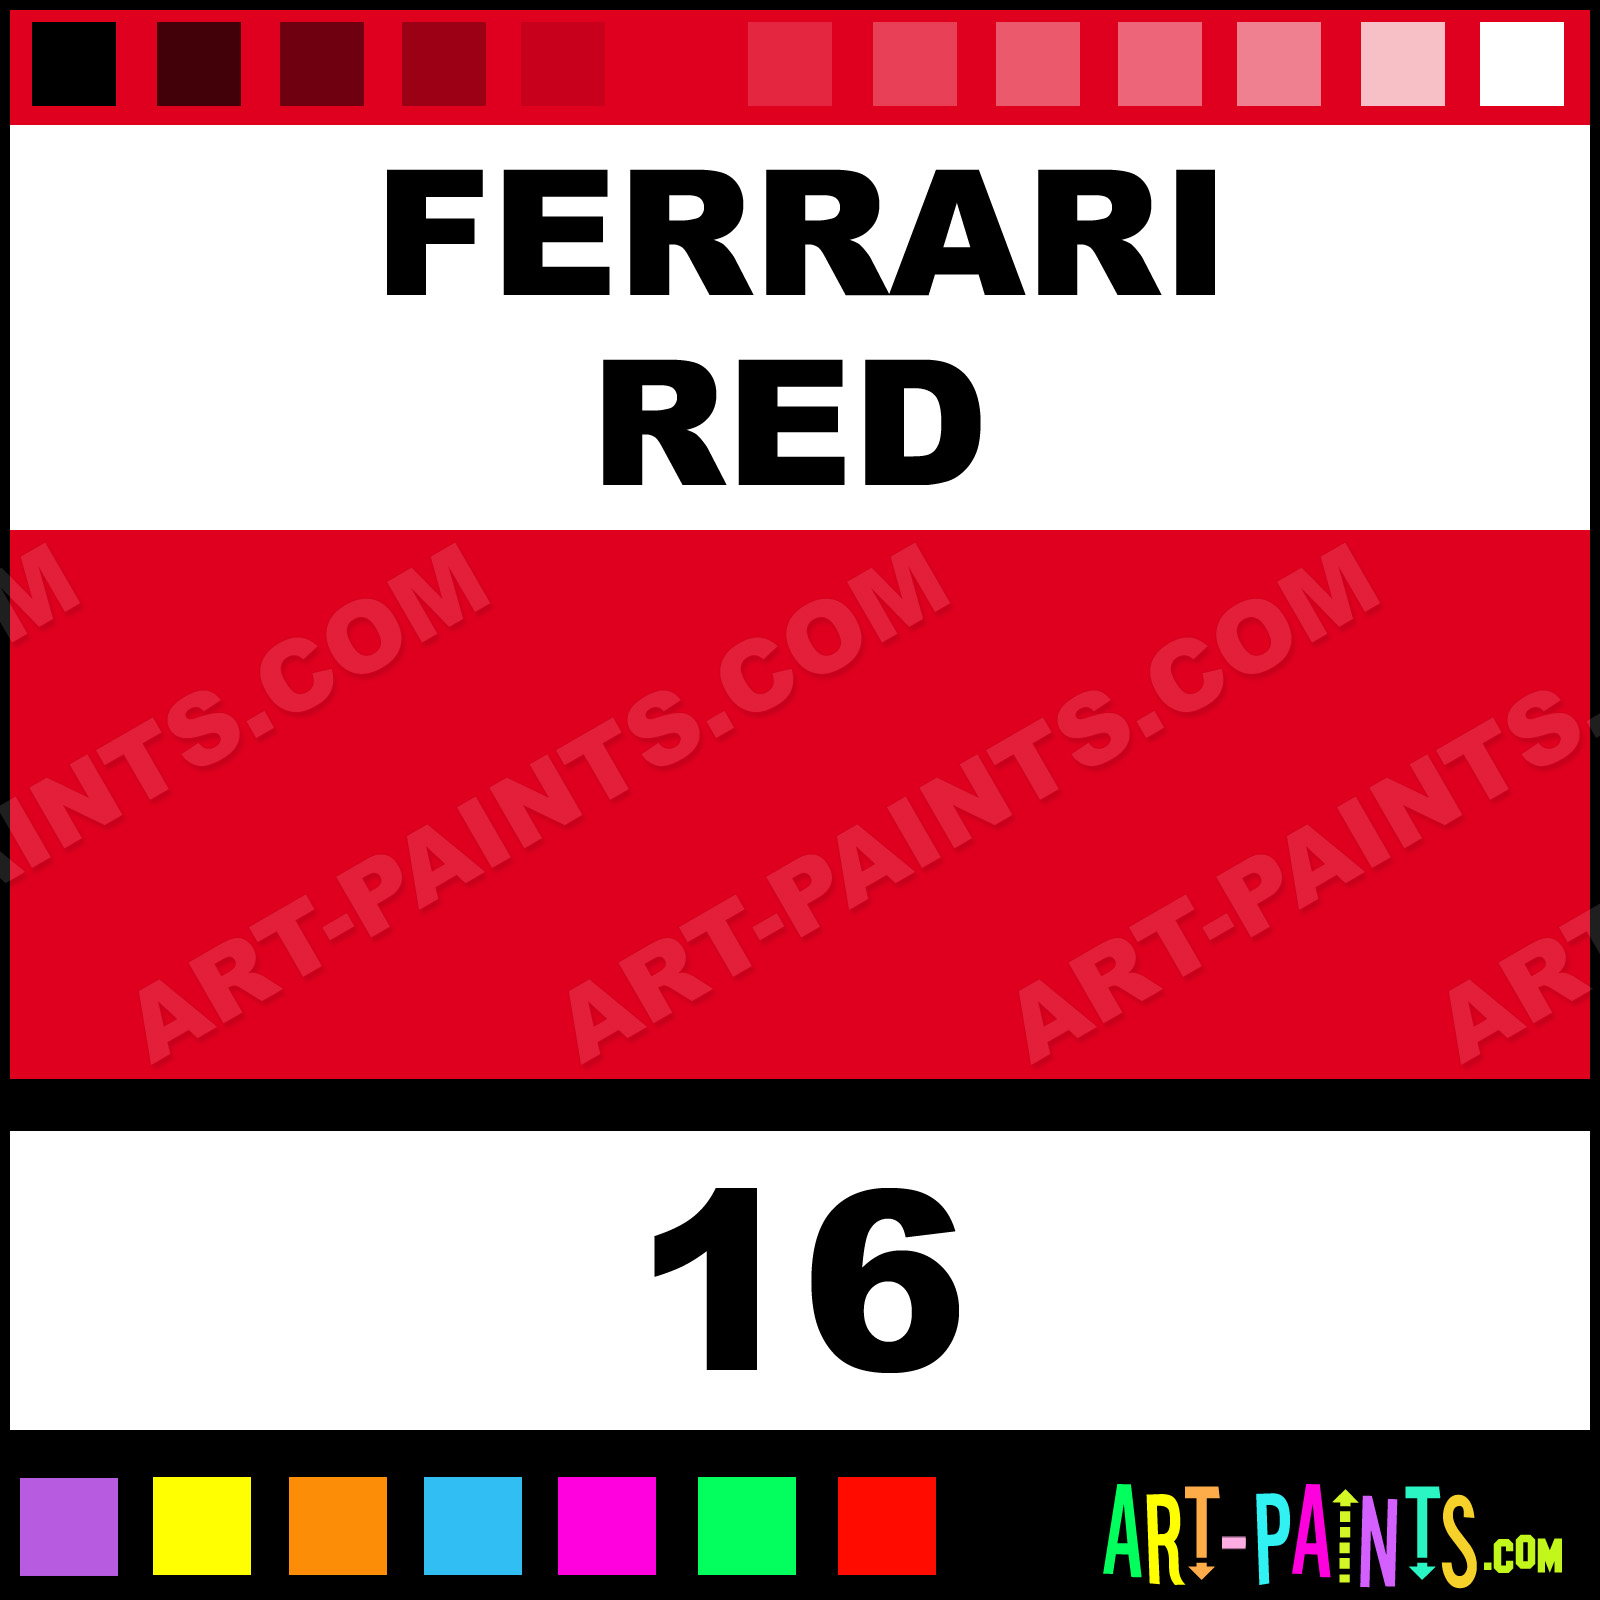 Ferrari Red Acrylic Enamel Paints